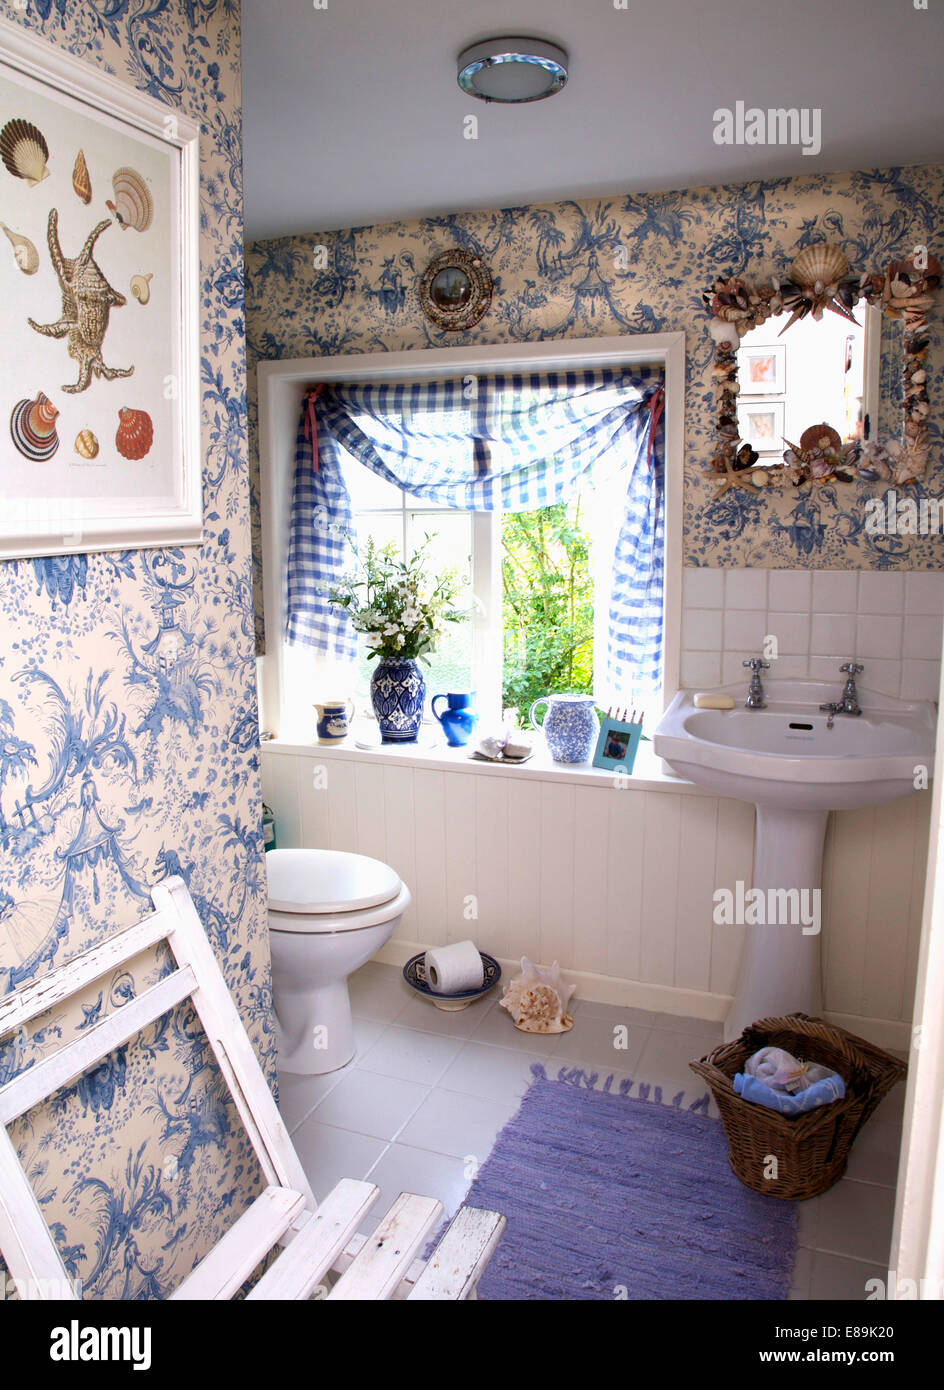 Blue Amp White Toile De Jouy Quot Wallpaper In Small Cottage